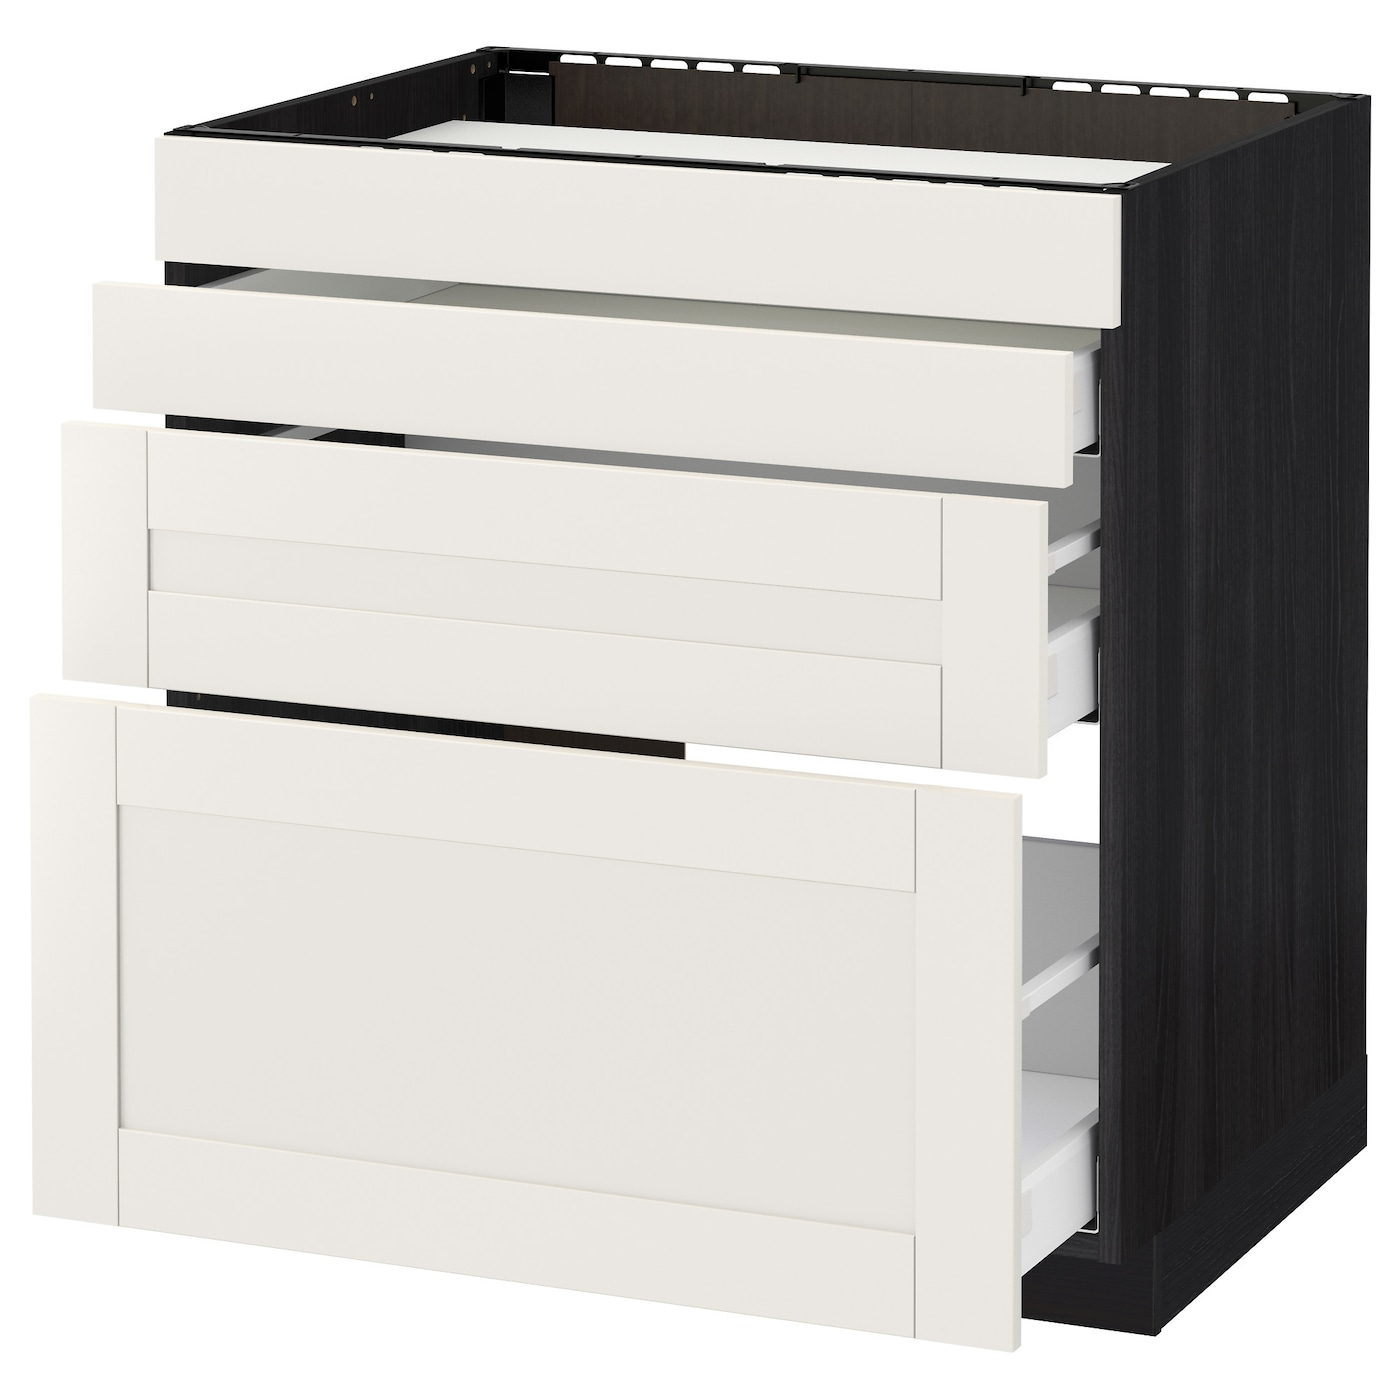 IKEA METOD/MAXIMERA base cab f hob/4 fronts/3 drawers Smooth-running drawers with stop.